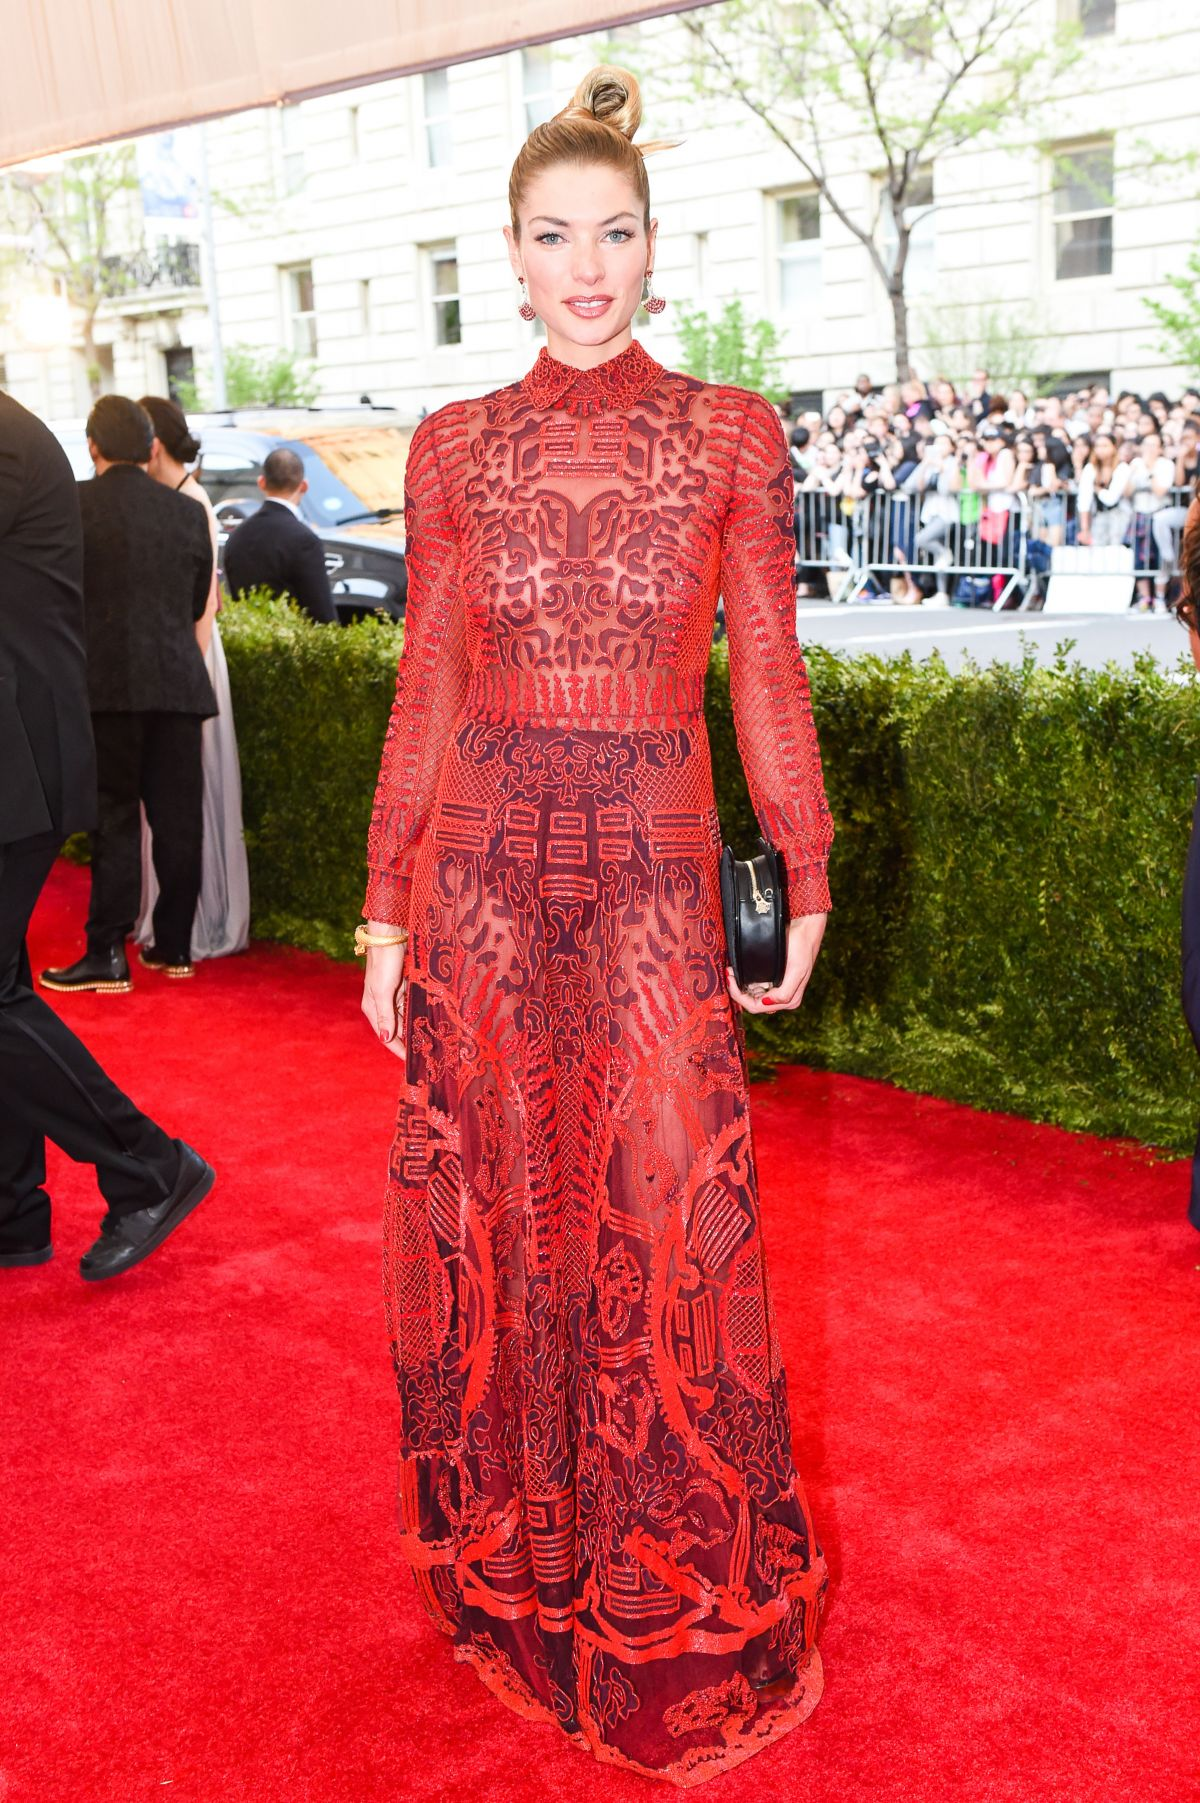 JESSICA HART at MET Gala 2015 in New York